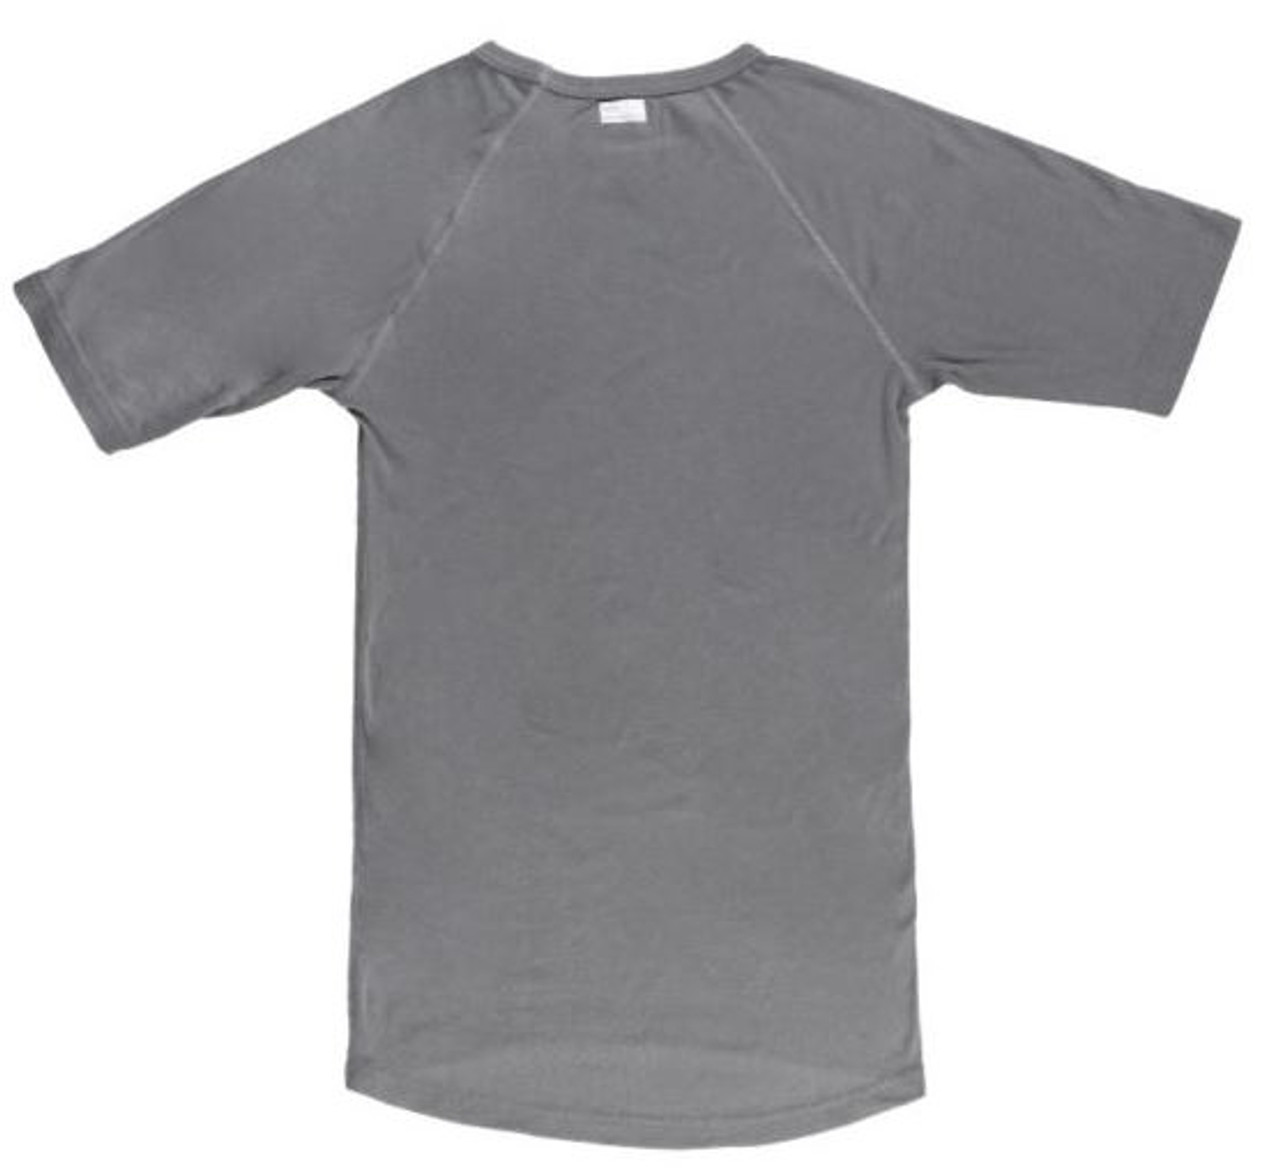 Dutch Foliage Green T-Shirt from Hessen Surplus